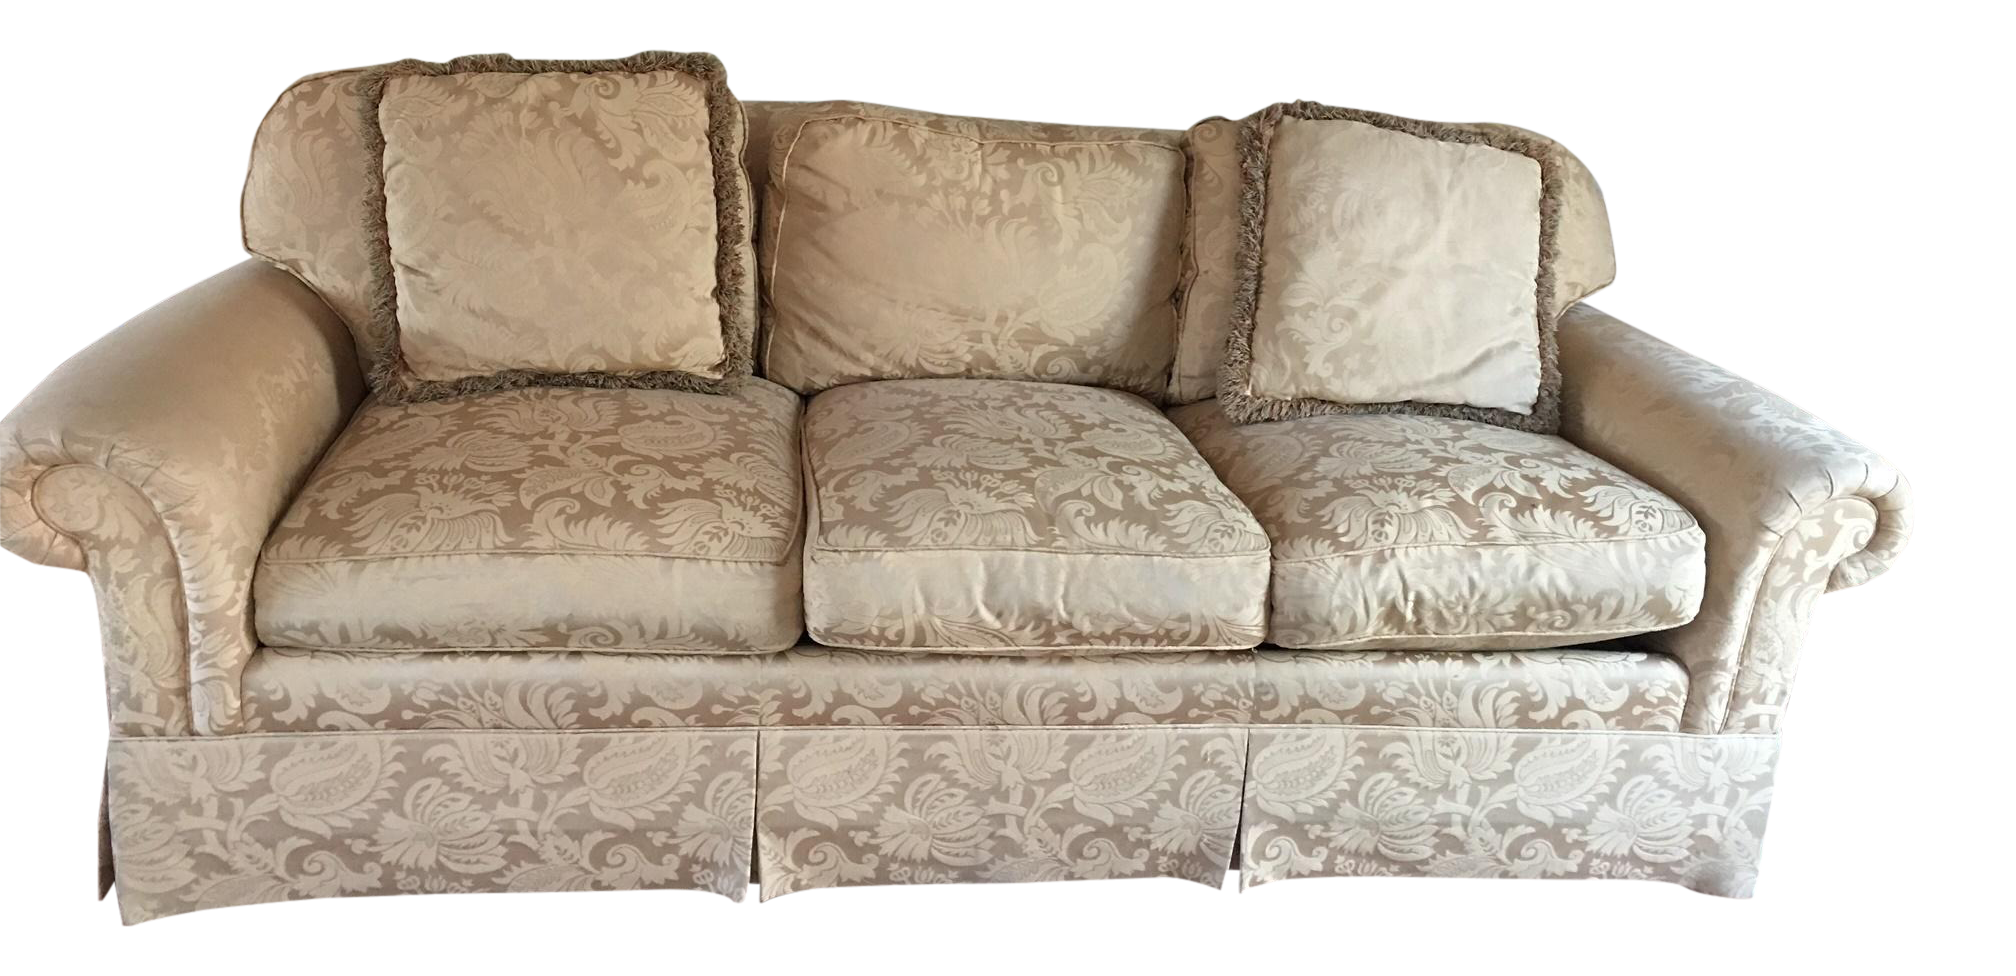 Delicieux Brocade Sherrill Sofa   Image 1 Of 4